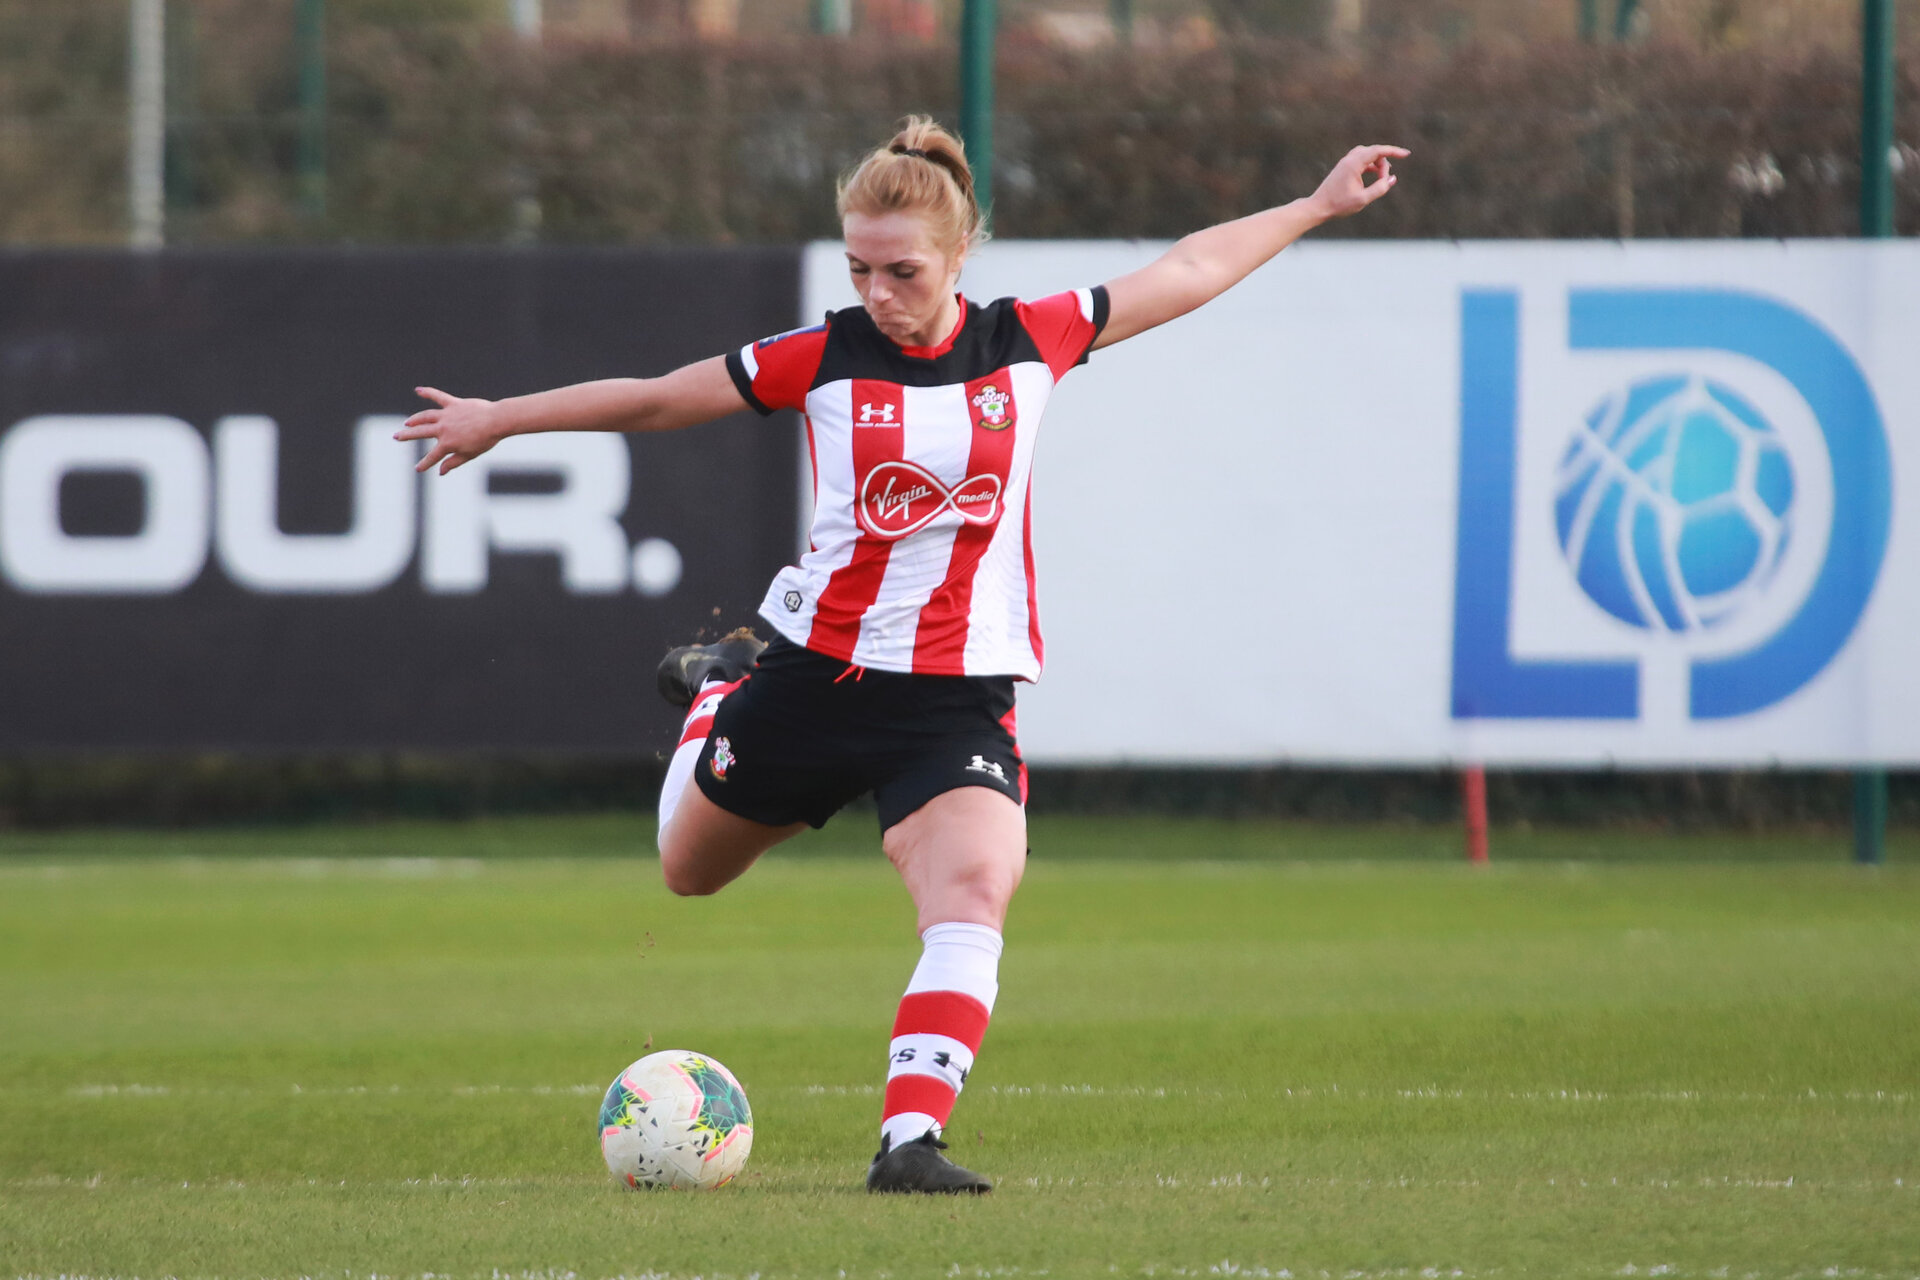 SOUTHAMPTON, ENGLAND - March 1: Rosanna Parnell of Southampton FC Womens during the FA Women's National League match between Southampton Women and Maidenhead United at Staplewood Campus on March 1 2020, Exeter, England. (Photo by Tom Mulholland/Southampton FC)